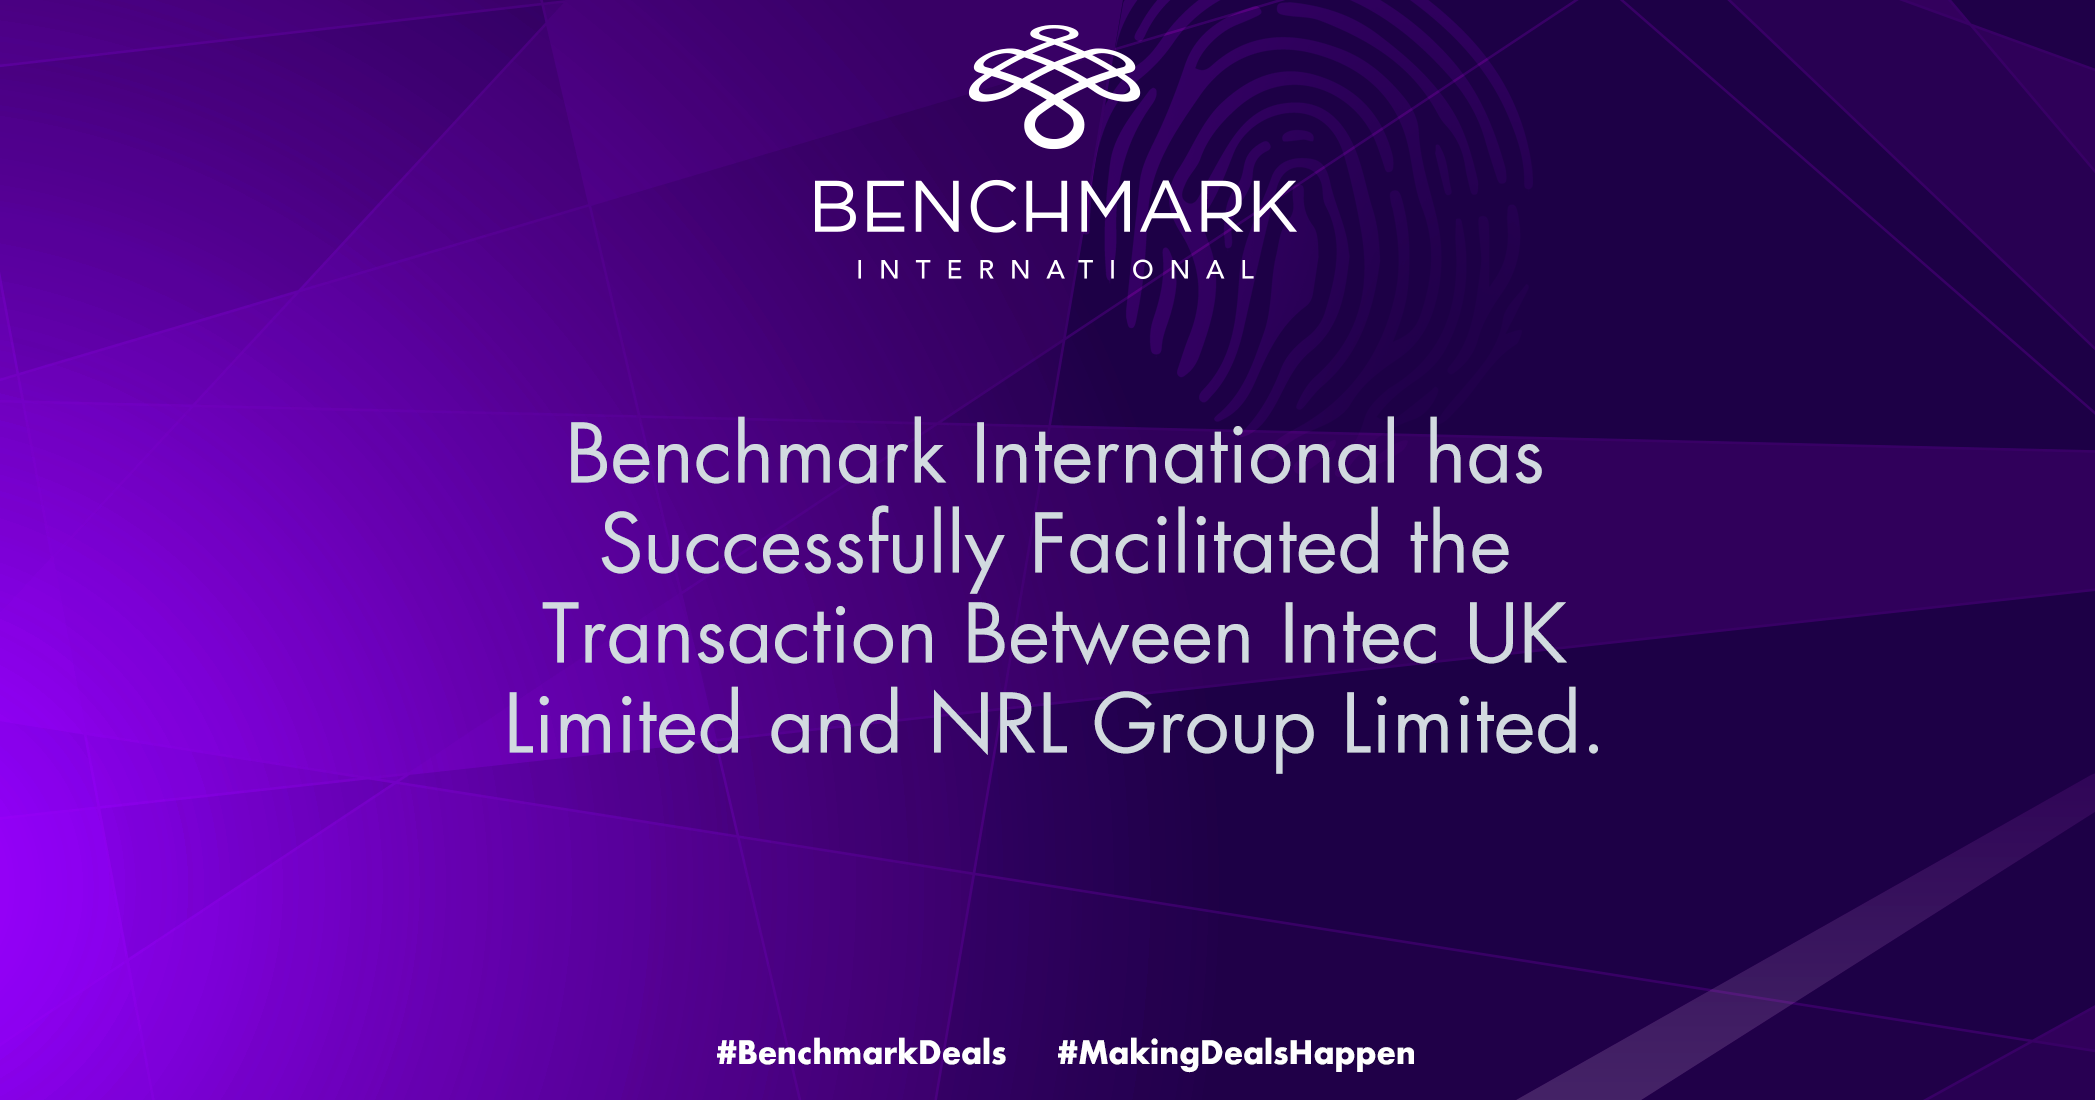 Benchmark International has Successfully Facilitated the Transaction Between Intec UK Limited and NRL Group Limited